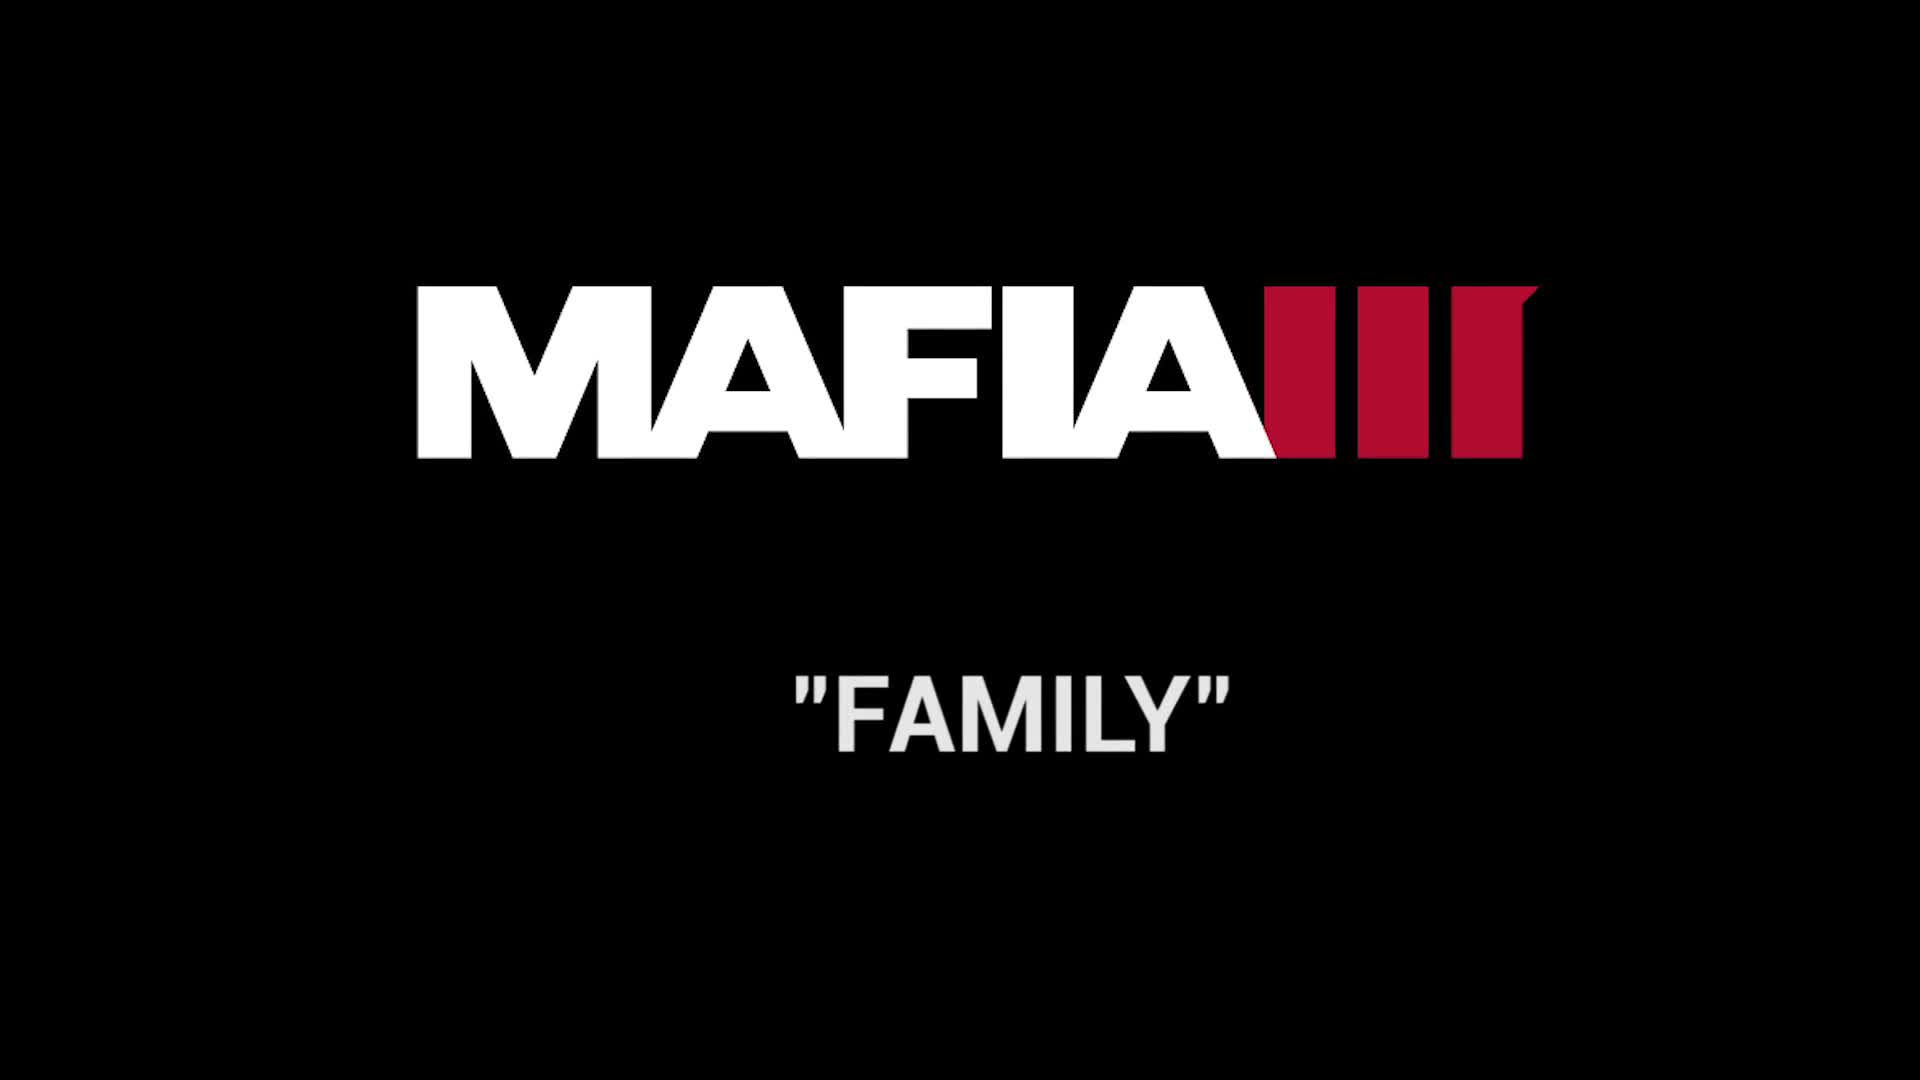 Mafia III Inside look - Family